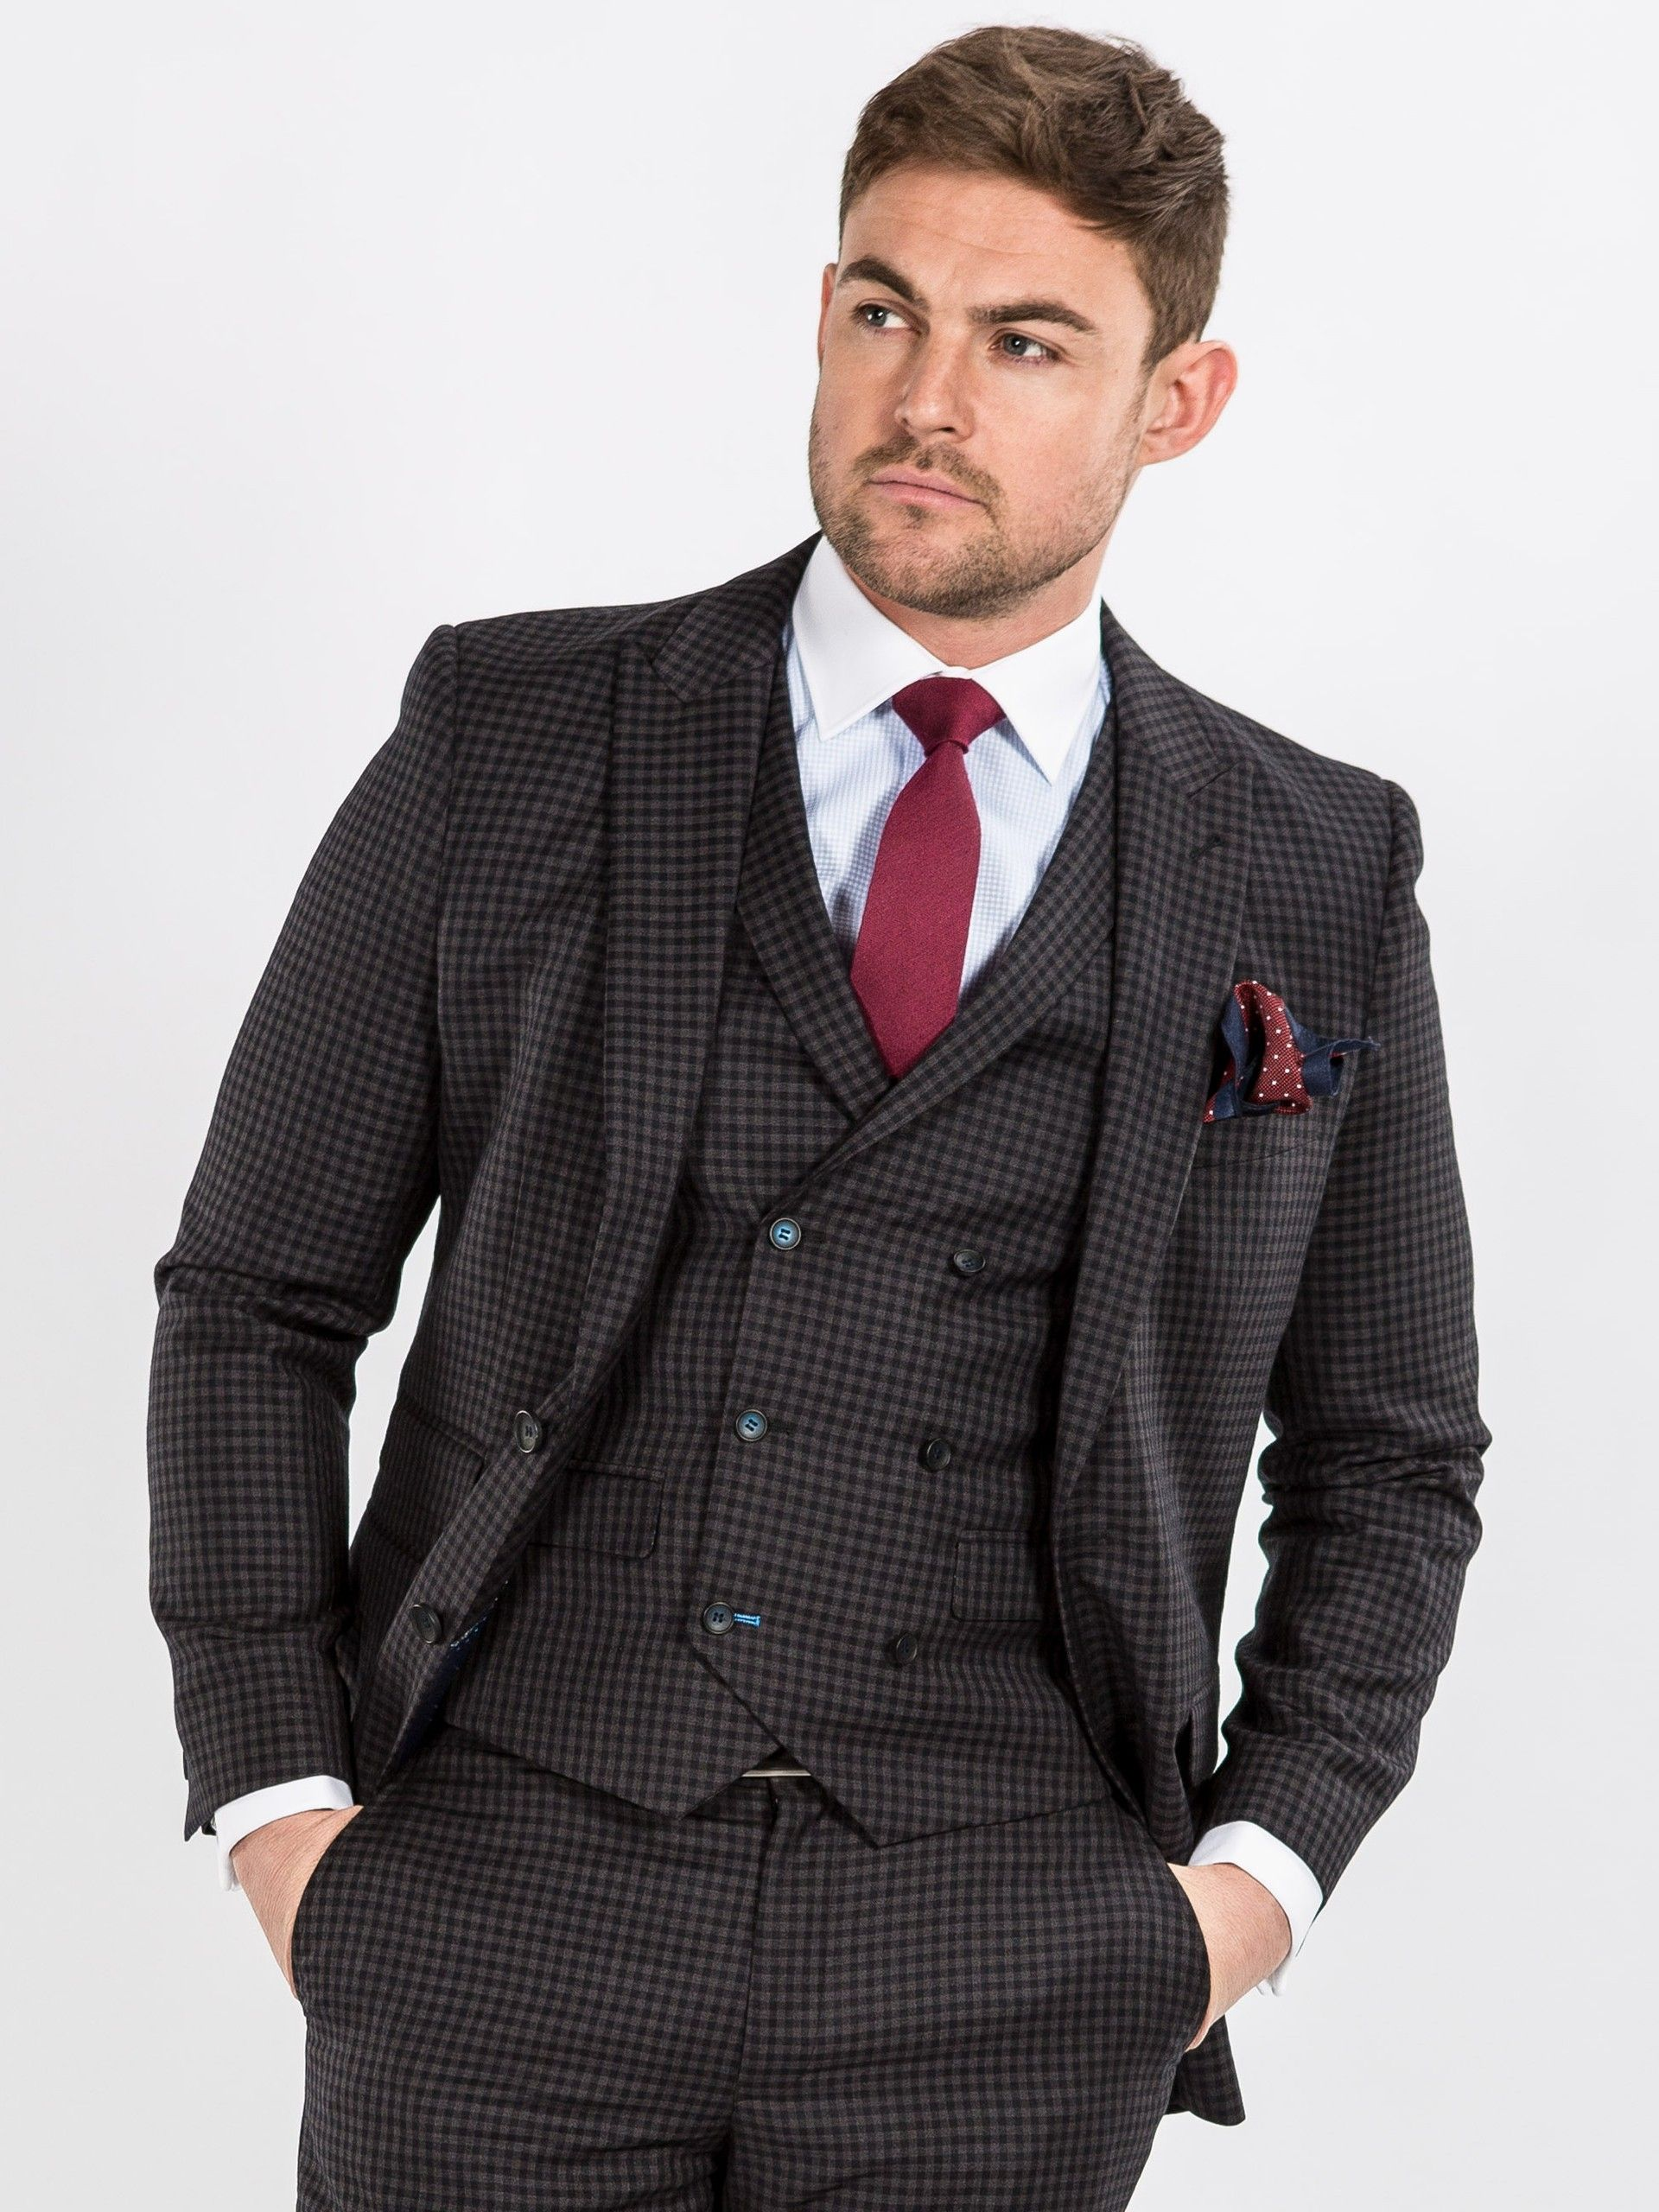 Onesix5ive Luxury Charcoal Check Double Breasted Waistcoat Slim Fit Three Piece Suit Mens Fashion Suits Suits Suit Combinations